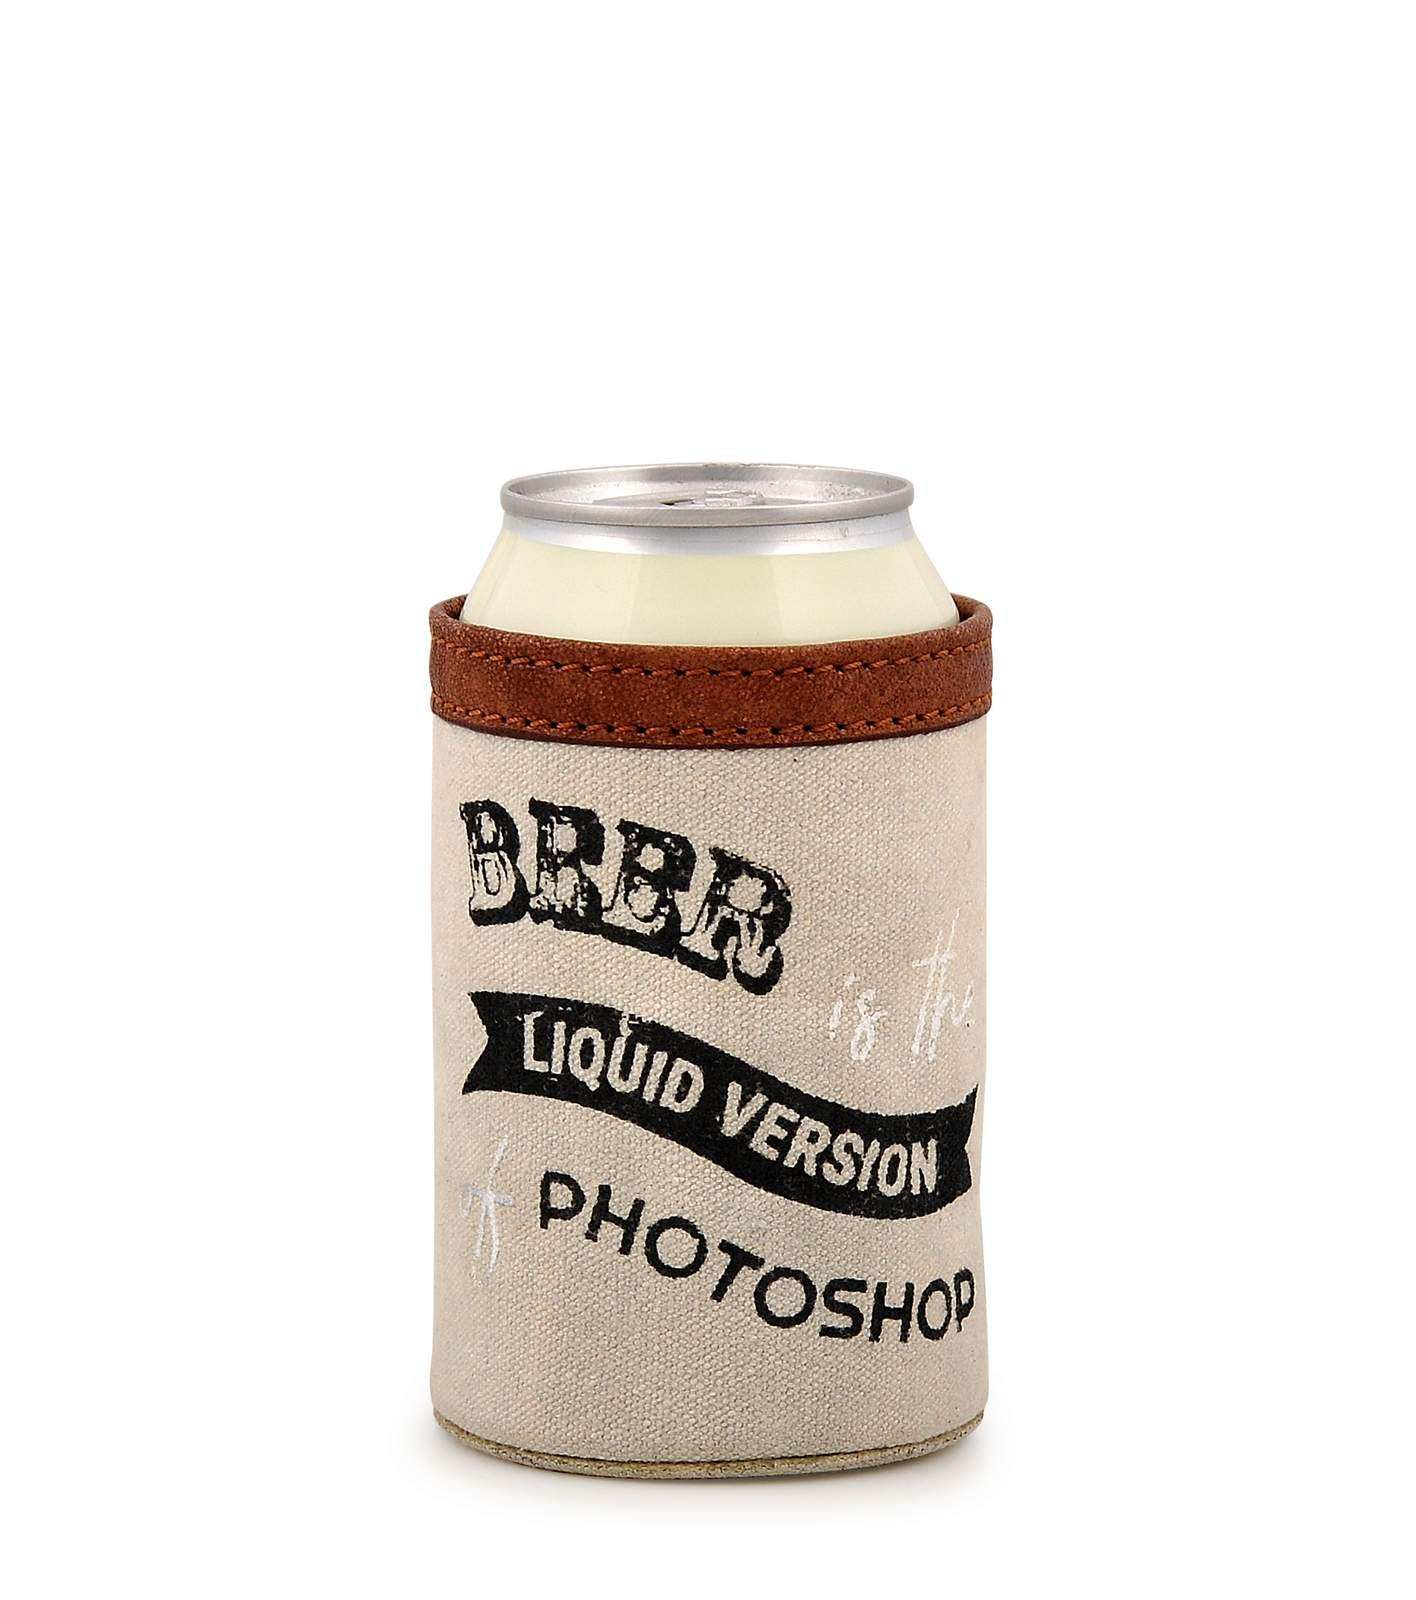 'Liquid Version of Photoshop' Can Koozie DSC18-0002